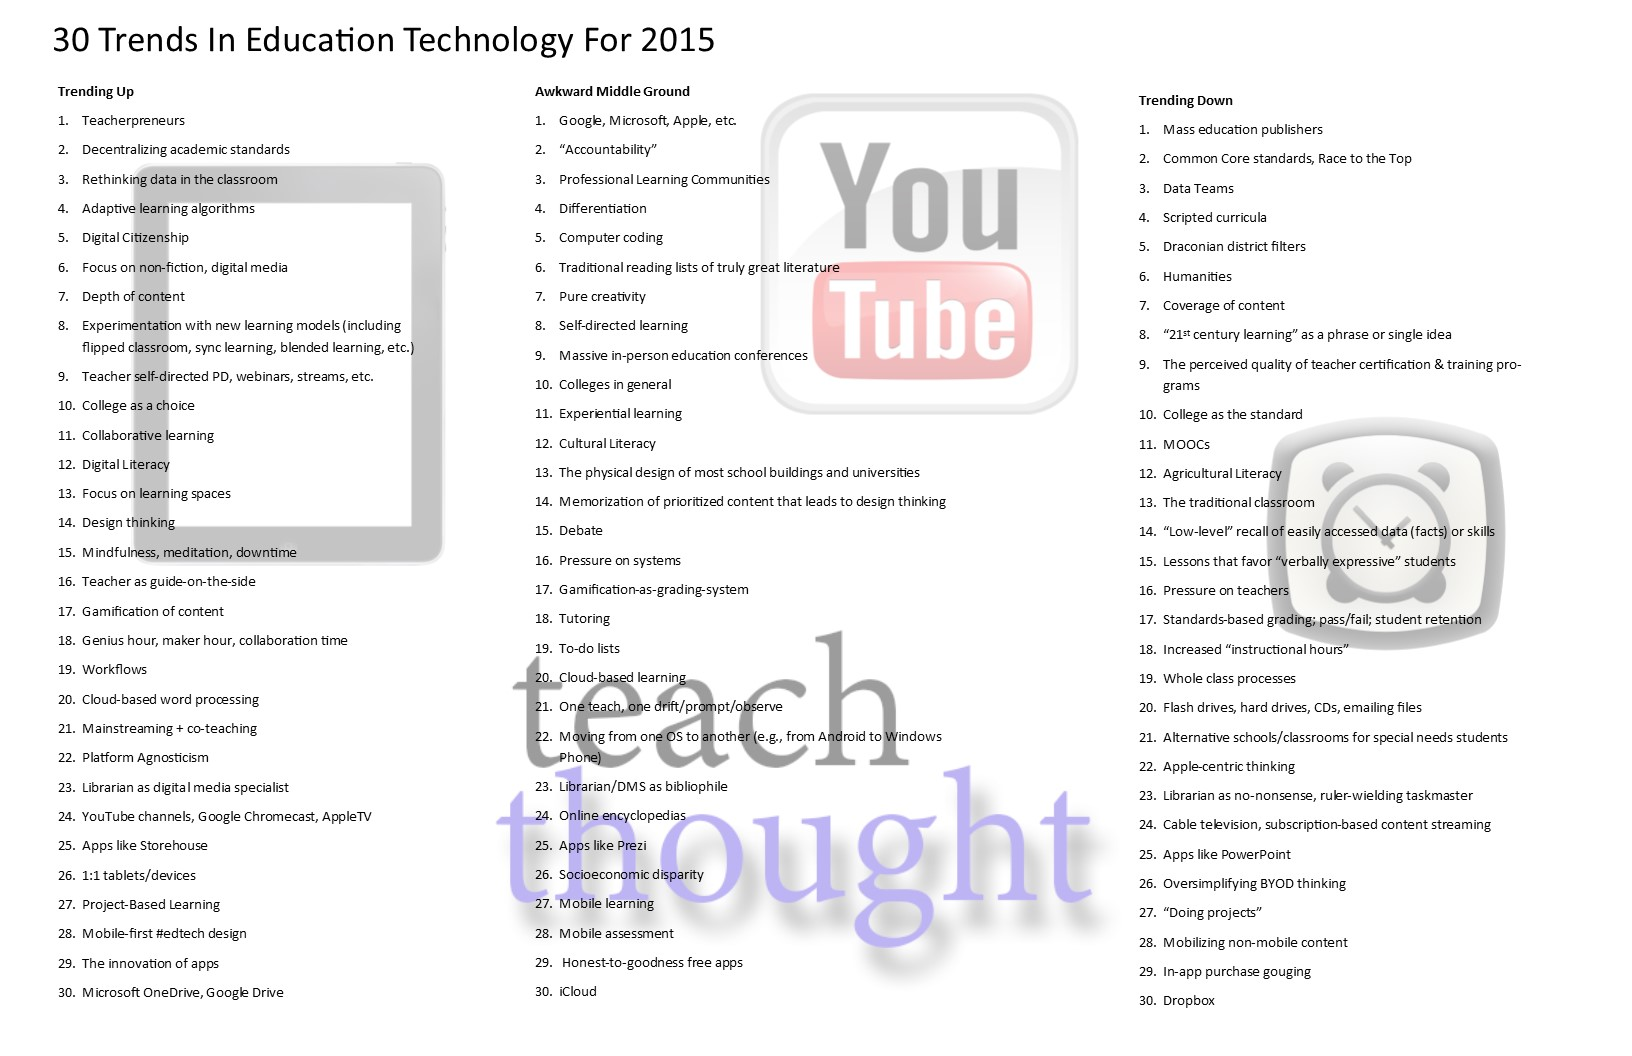 trends-in-education-technology-for-2015